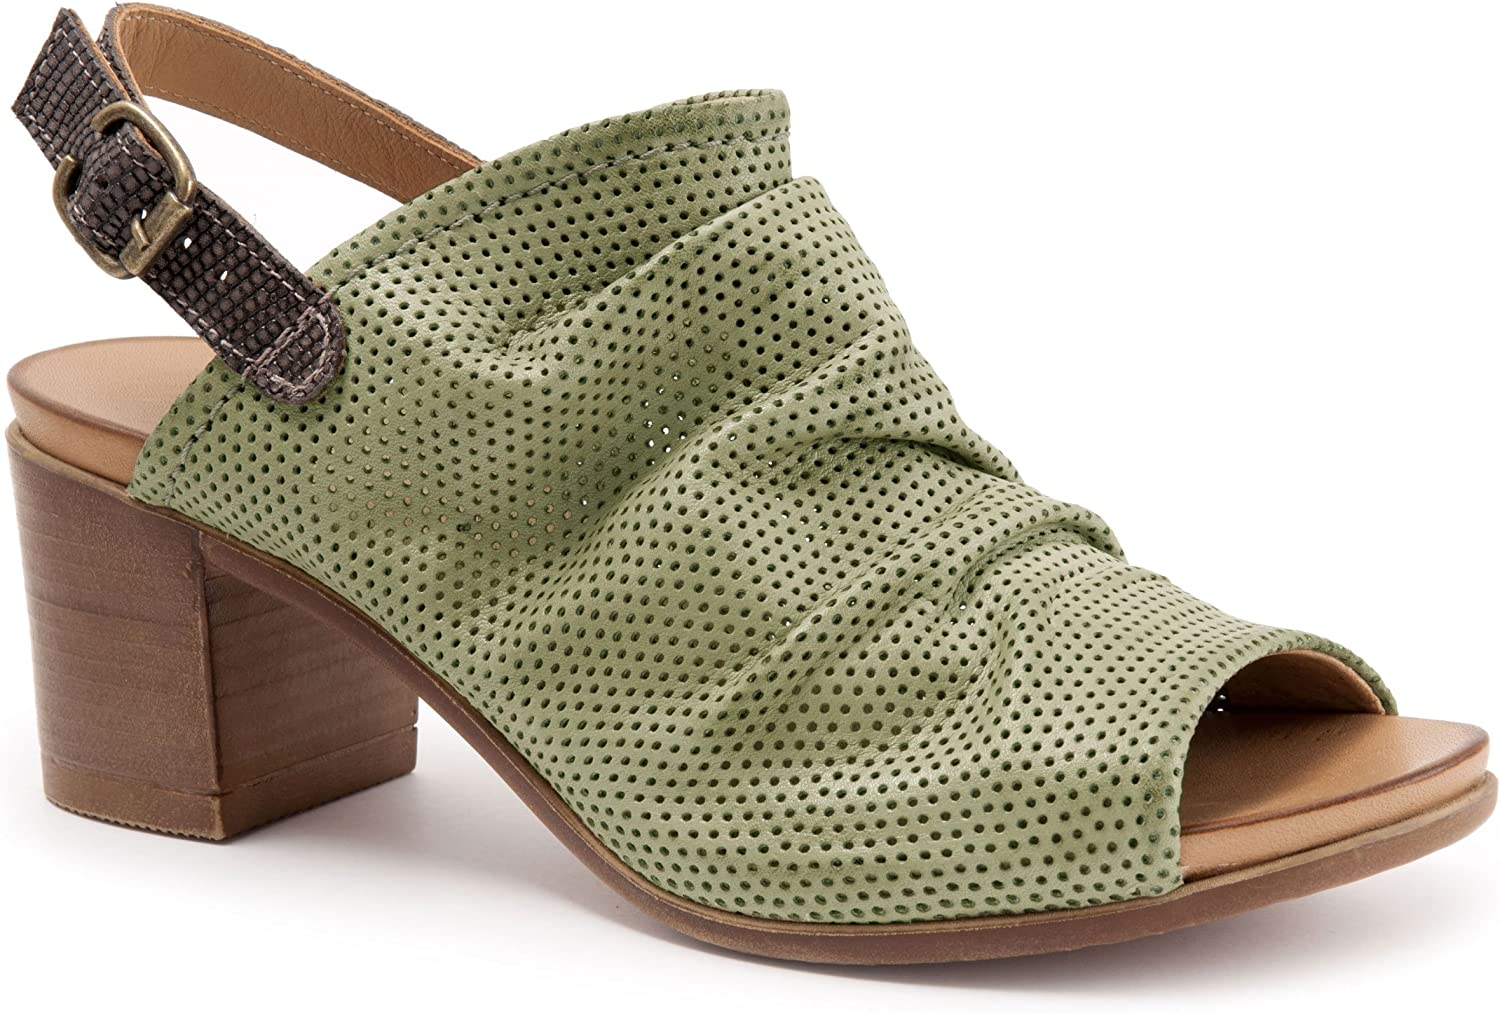 Bueno Women's Dolly Sandals in Moss Perf Taupe Lizard